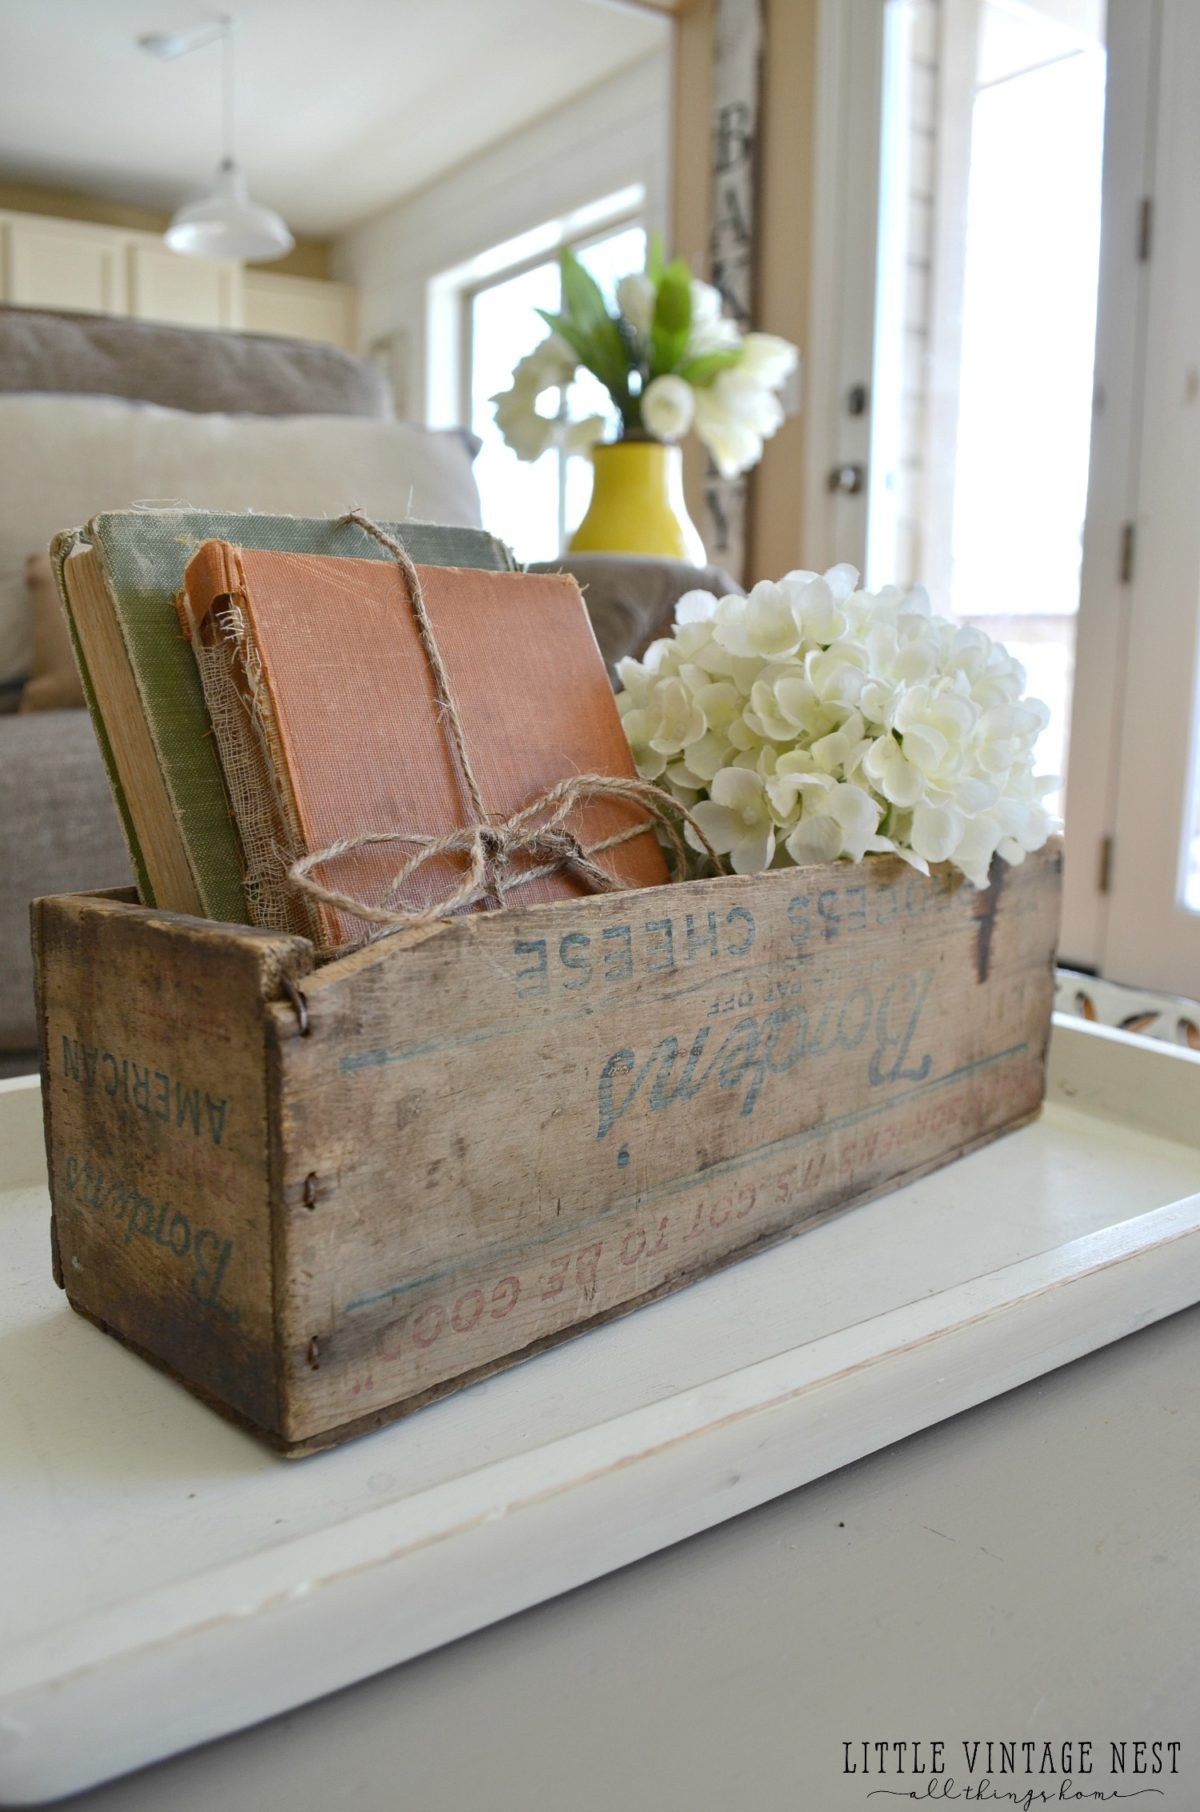 Vintage Decor Part - 21: How To Decorate With Vintage Decor Old Books And Vintage Cheesebox